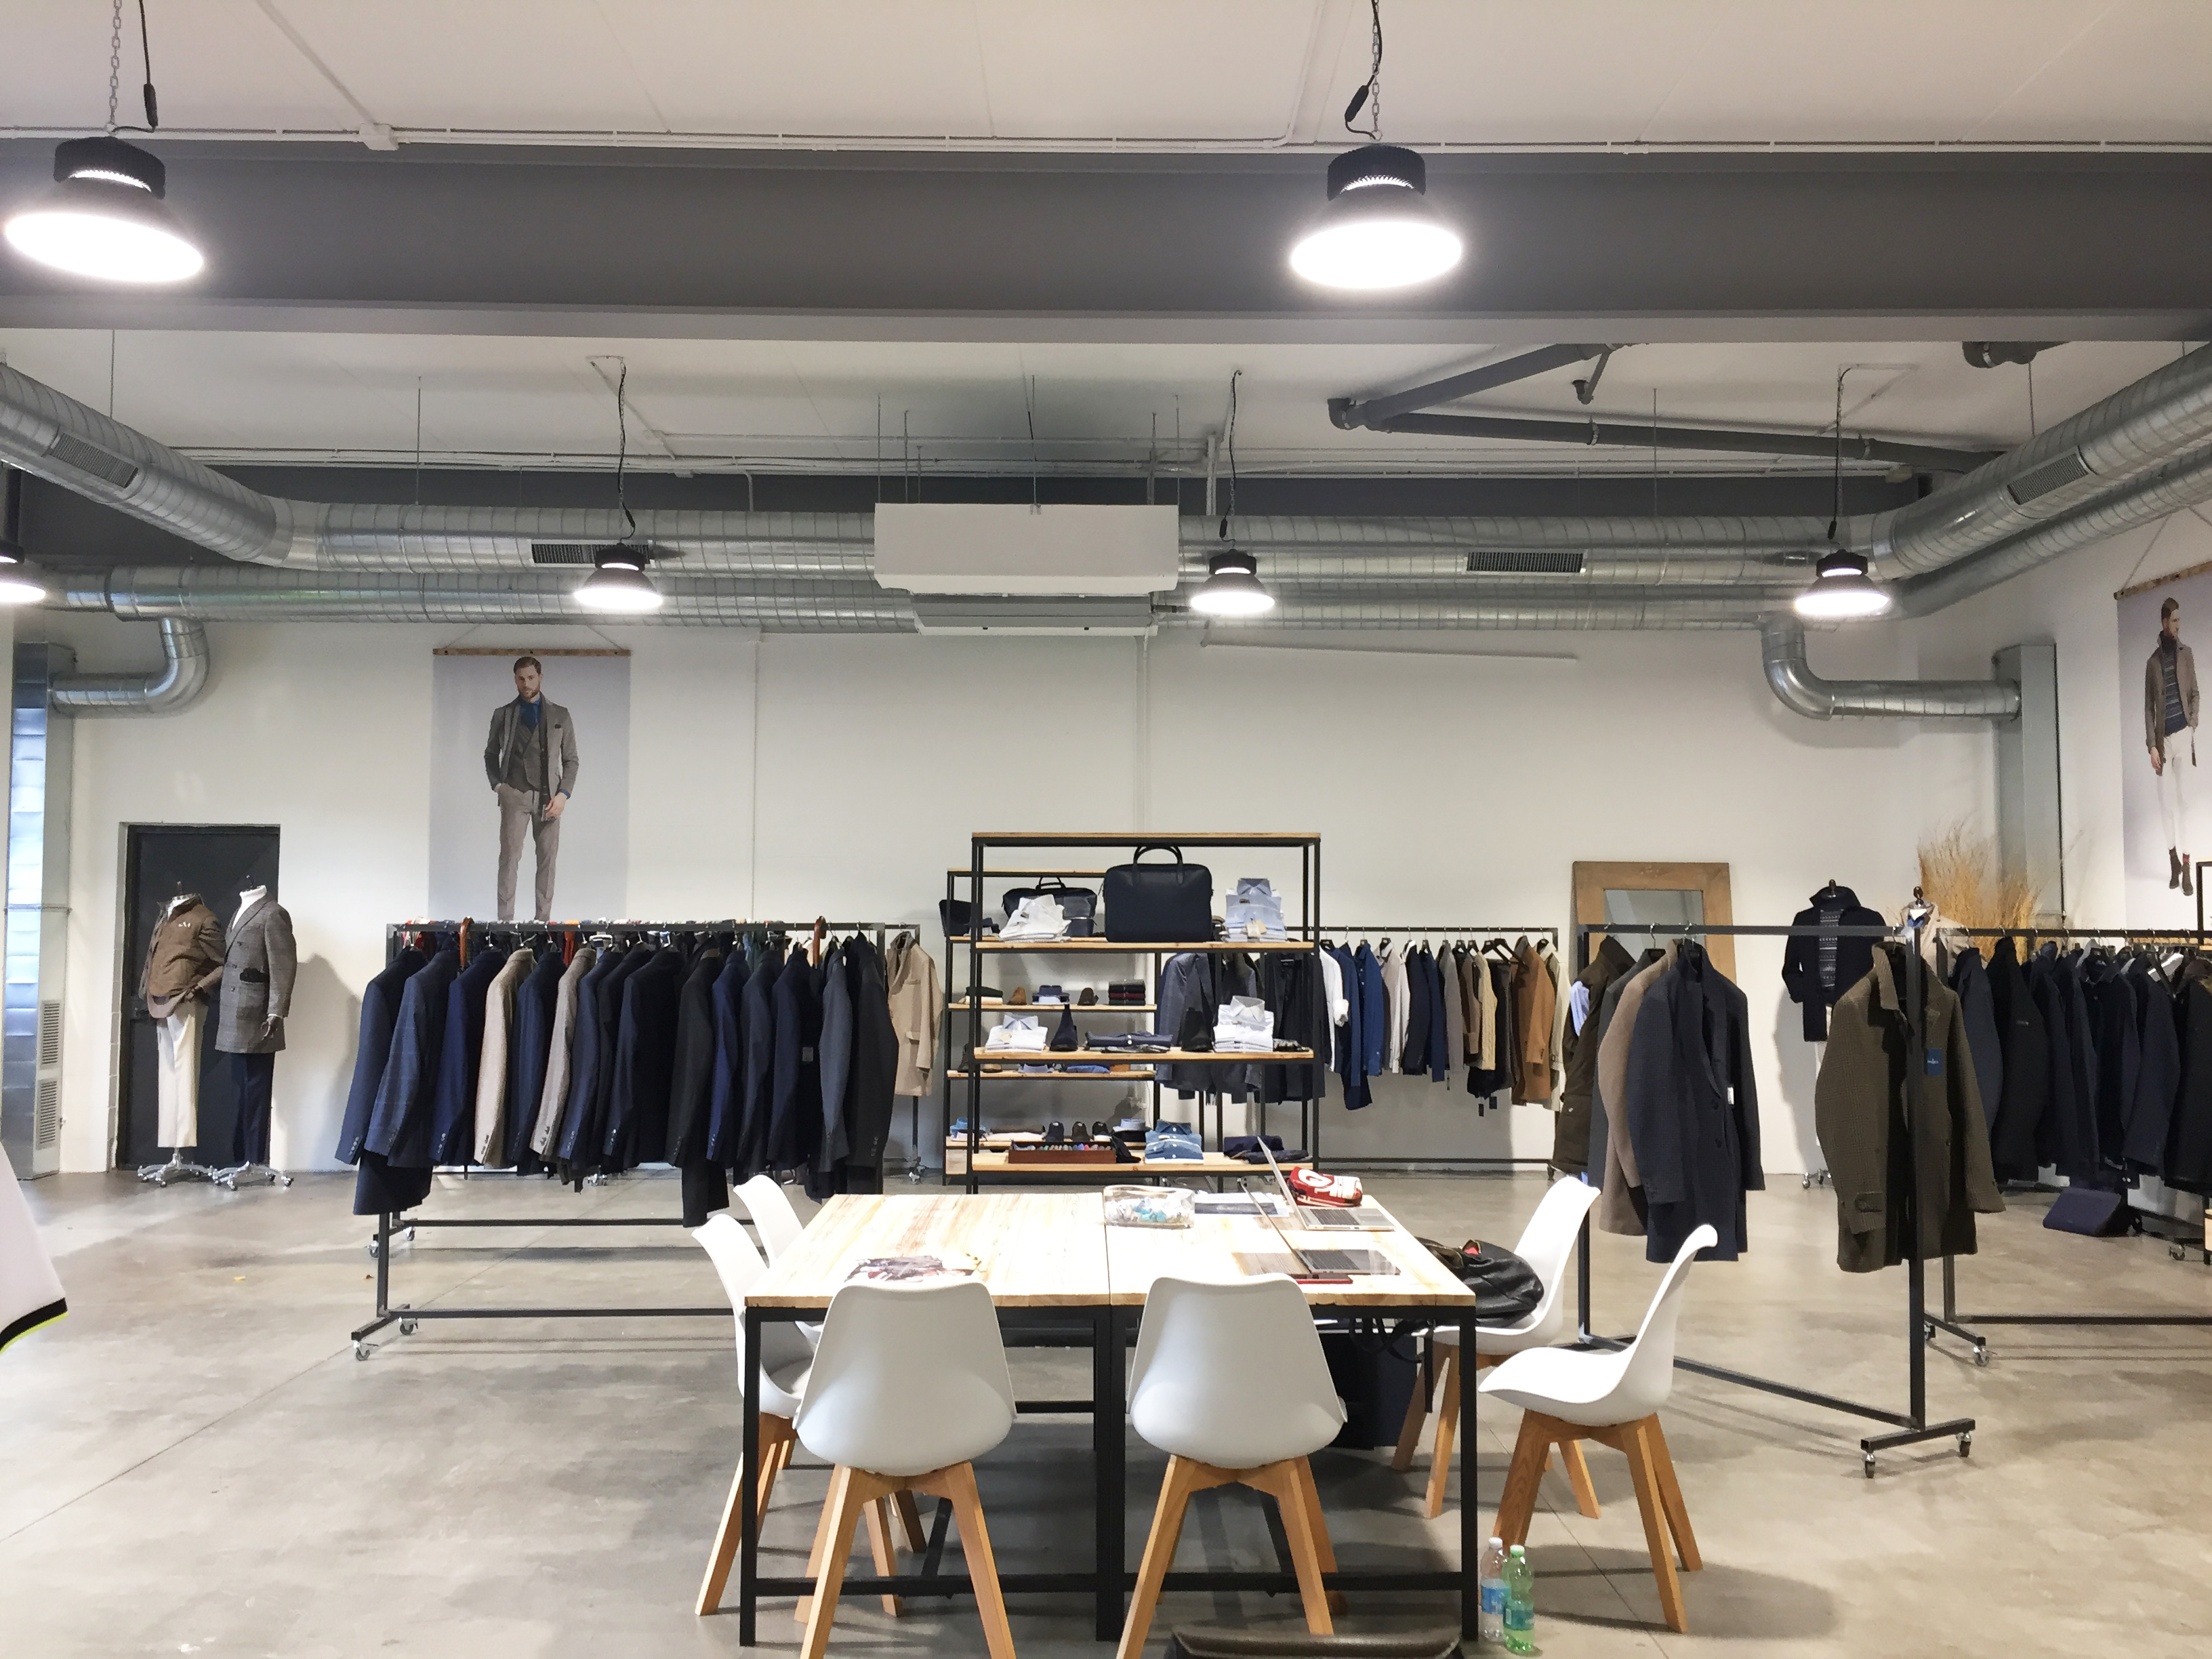 Officina3 - Open space, Spazio industriale di 200mq in Via Tortona 31  | location allestita 2